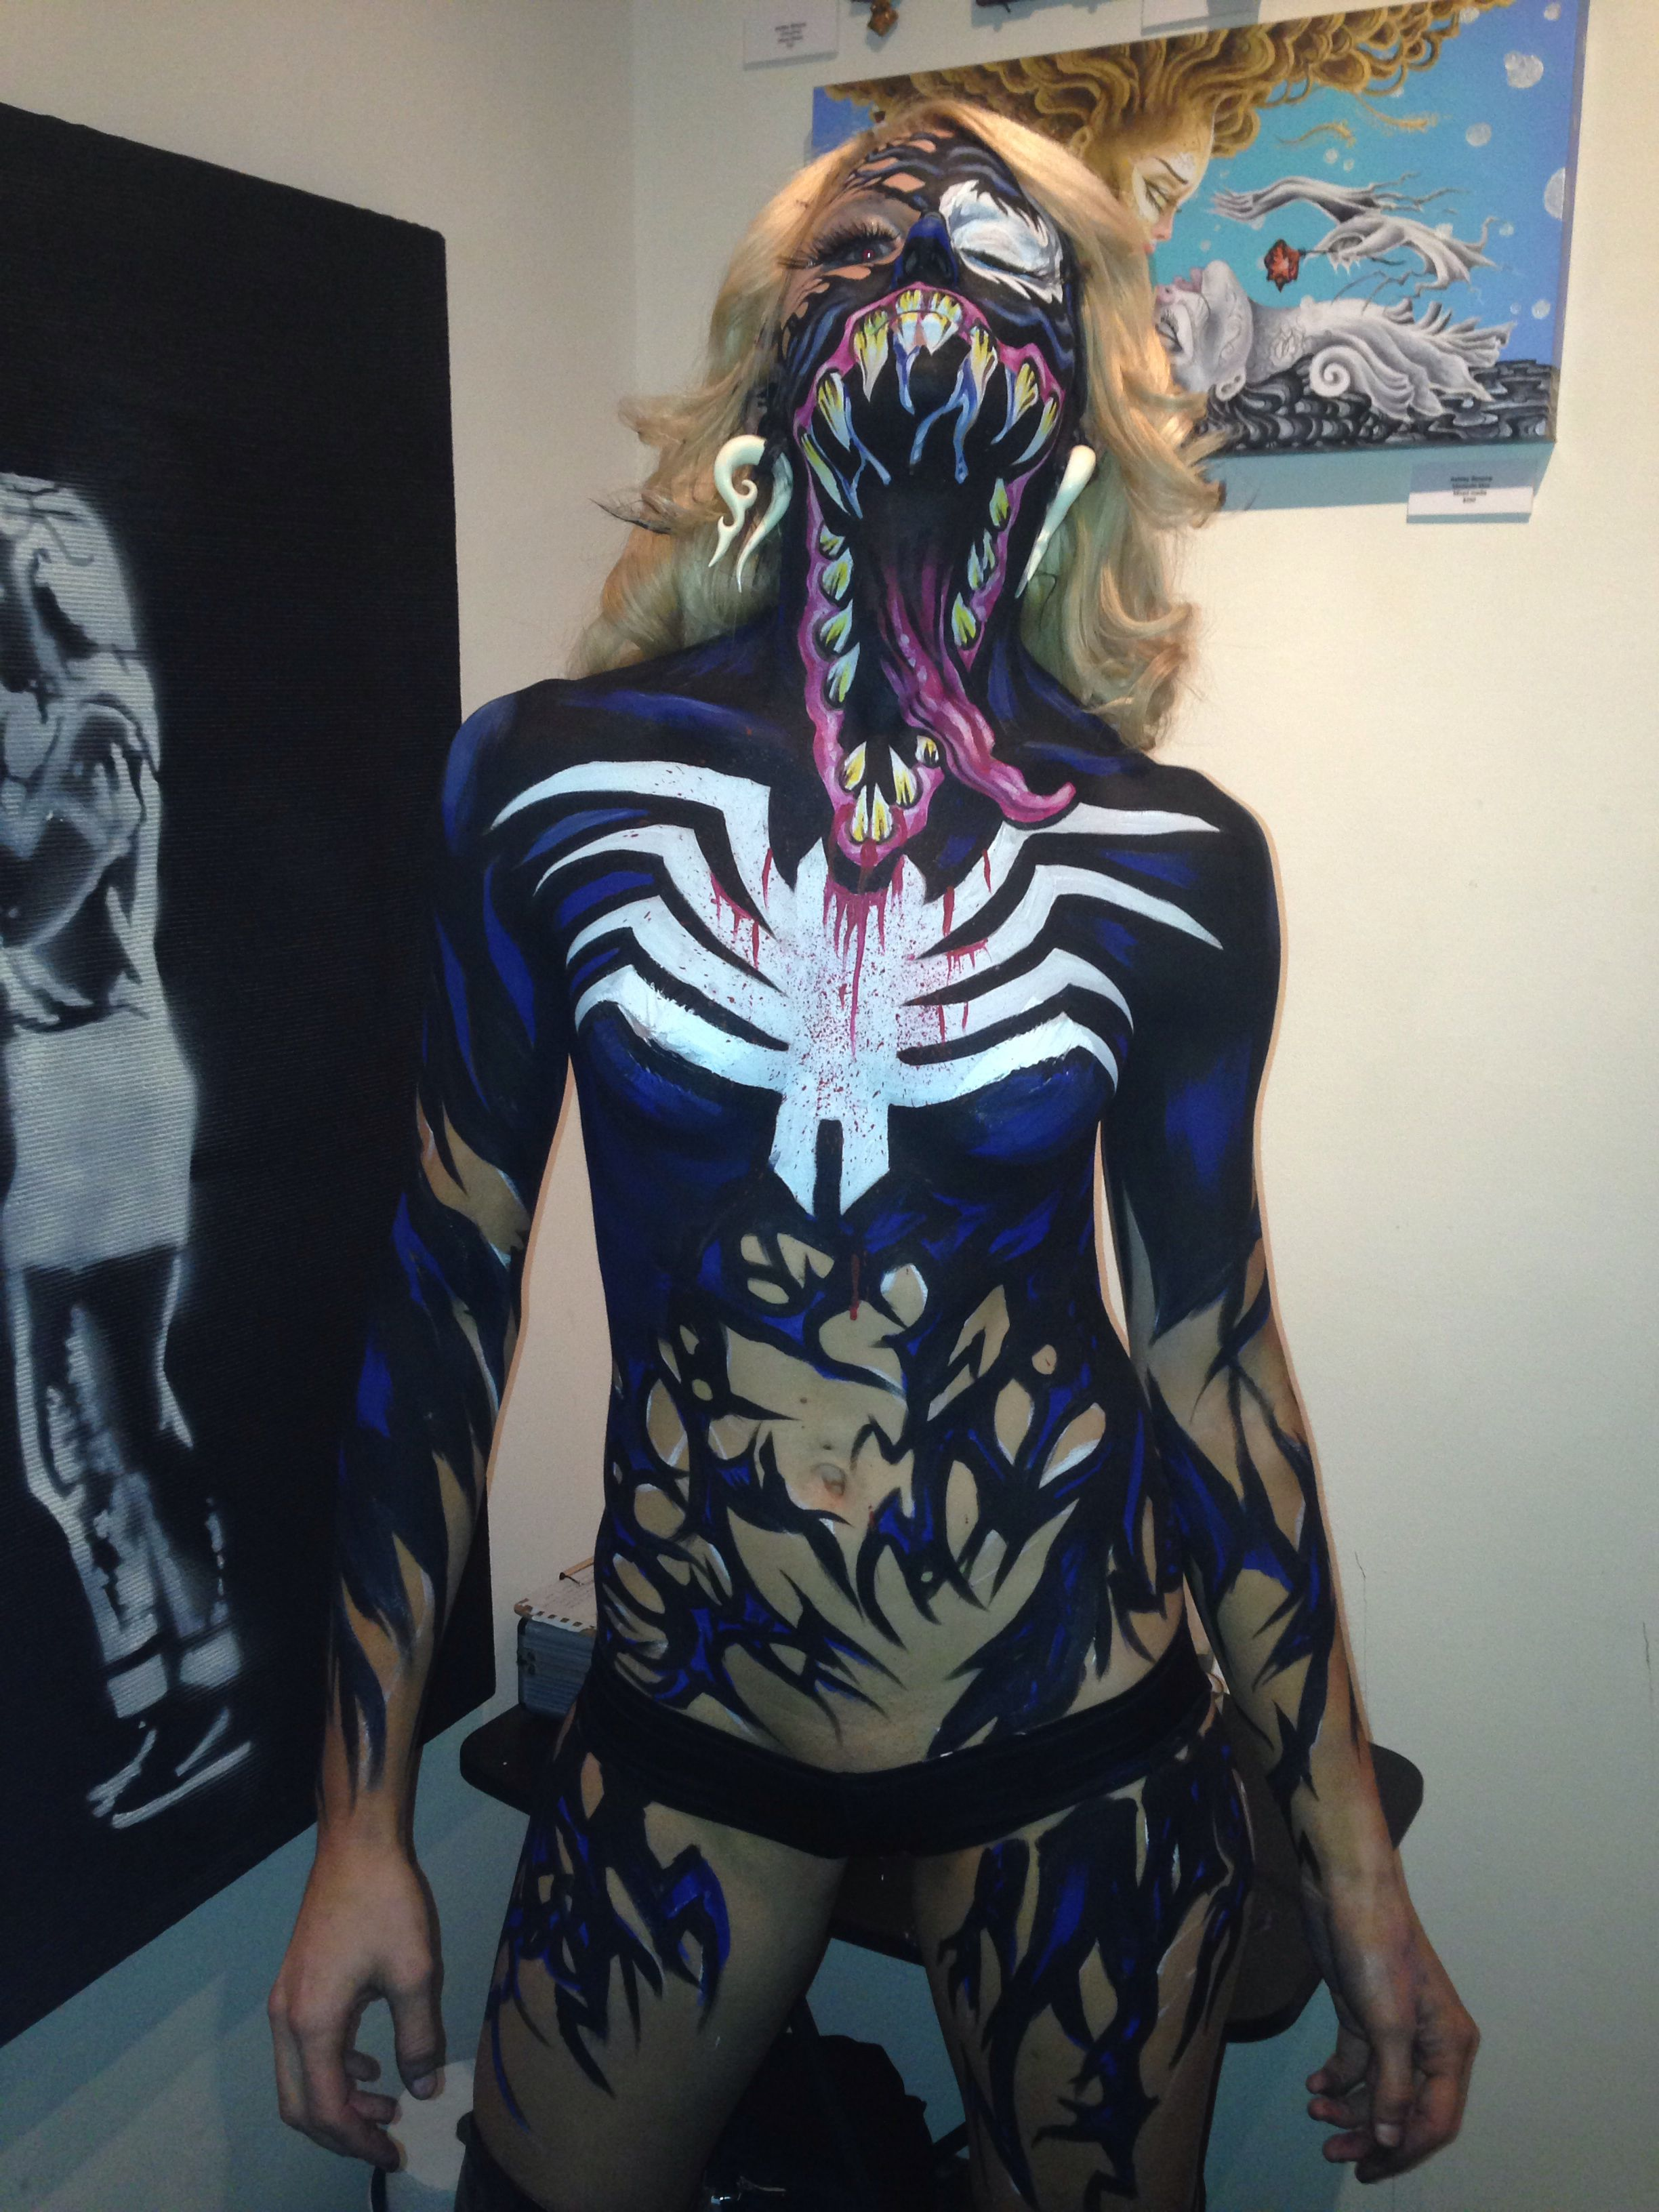 xxx body paint costumes